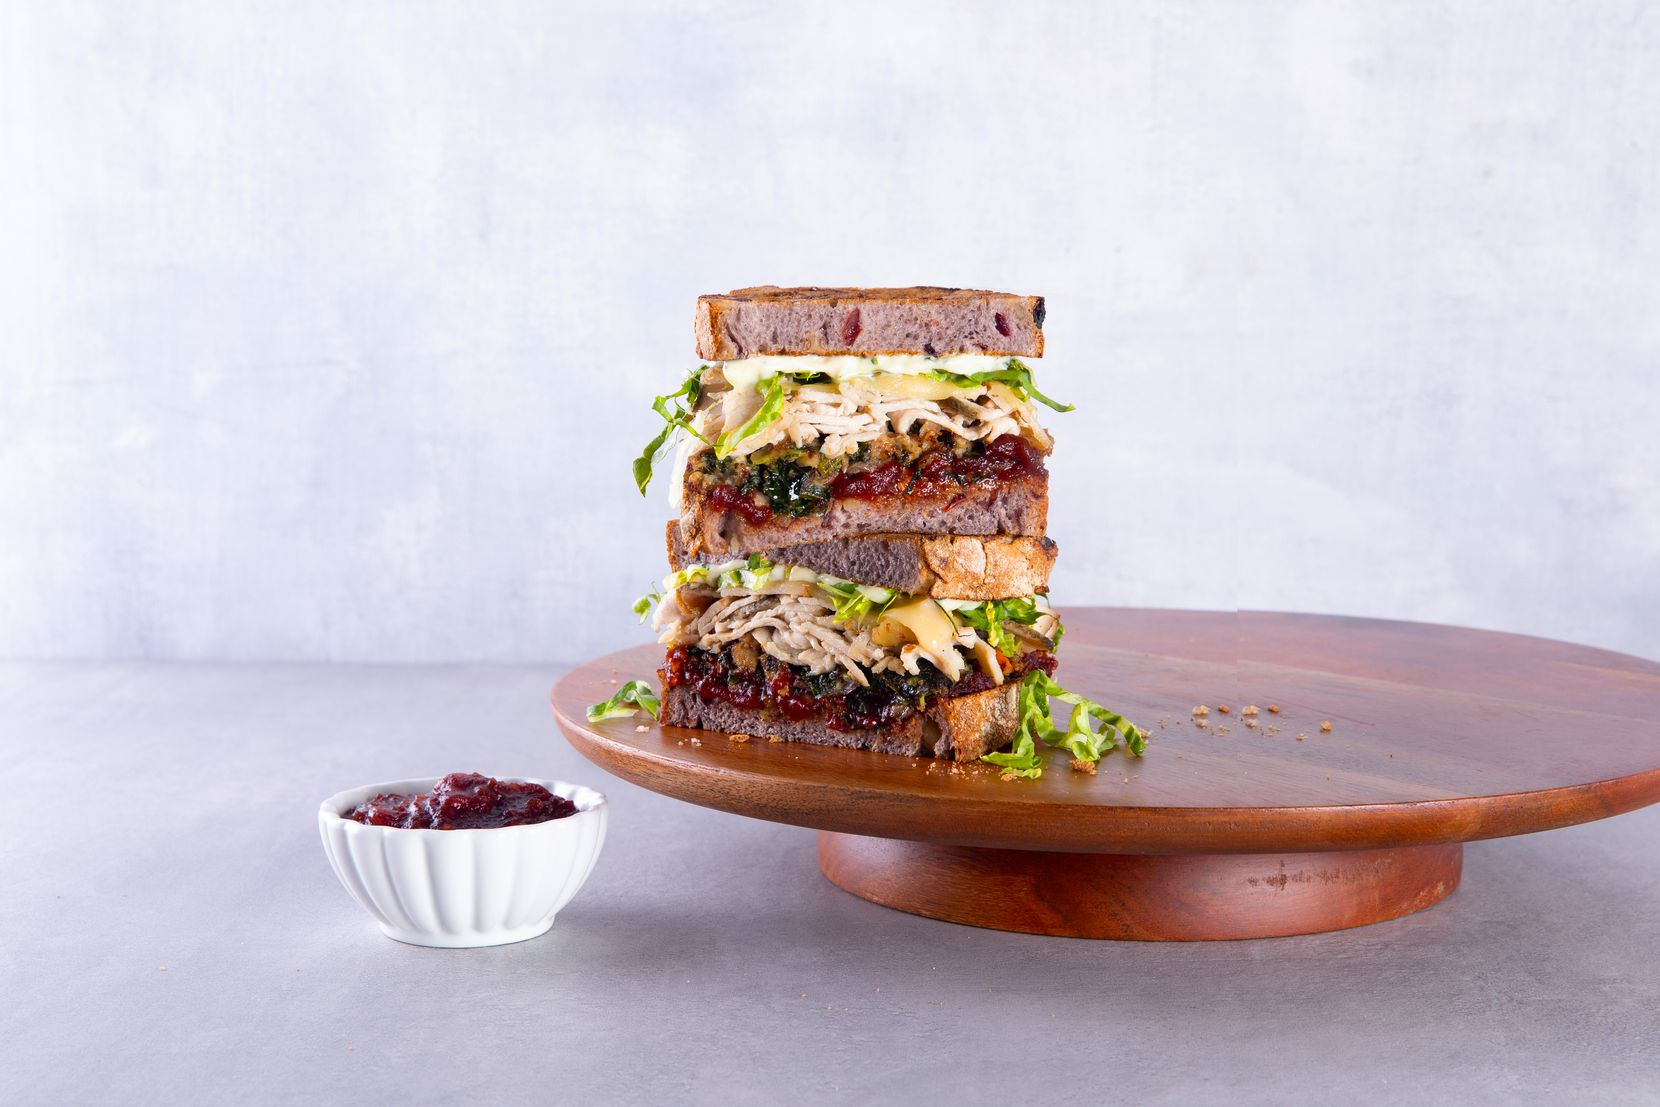 Mendocino Farms offers its November to Remember sandwich through Dec. 1, 2020. The sandwich includes warm carved turkey, housemade kale-mushroom-turkey sausage stuffing, ancho chile-cranberry chutney, havarti cheese, herb aioli and shredded romaine.